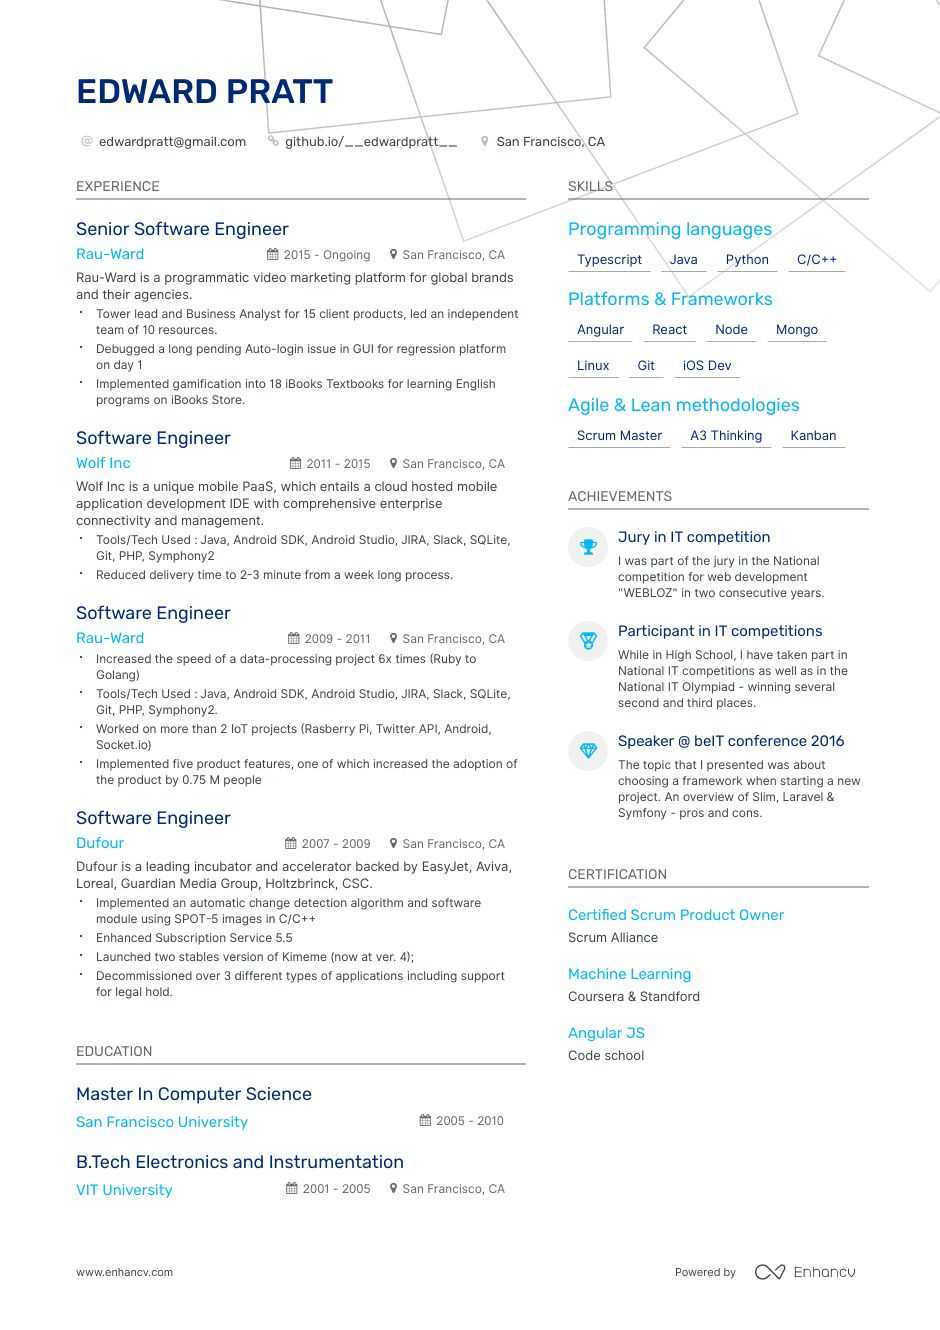 software engineer resume step ultimate guide for enhancv development manager examples Resume Software Development Manager Resume Examples 2020